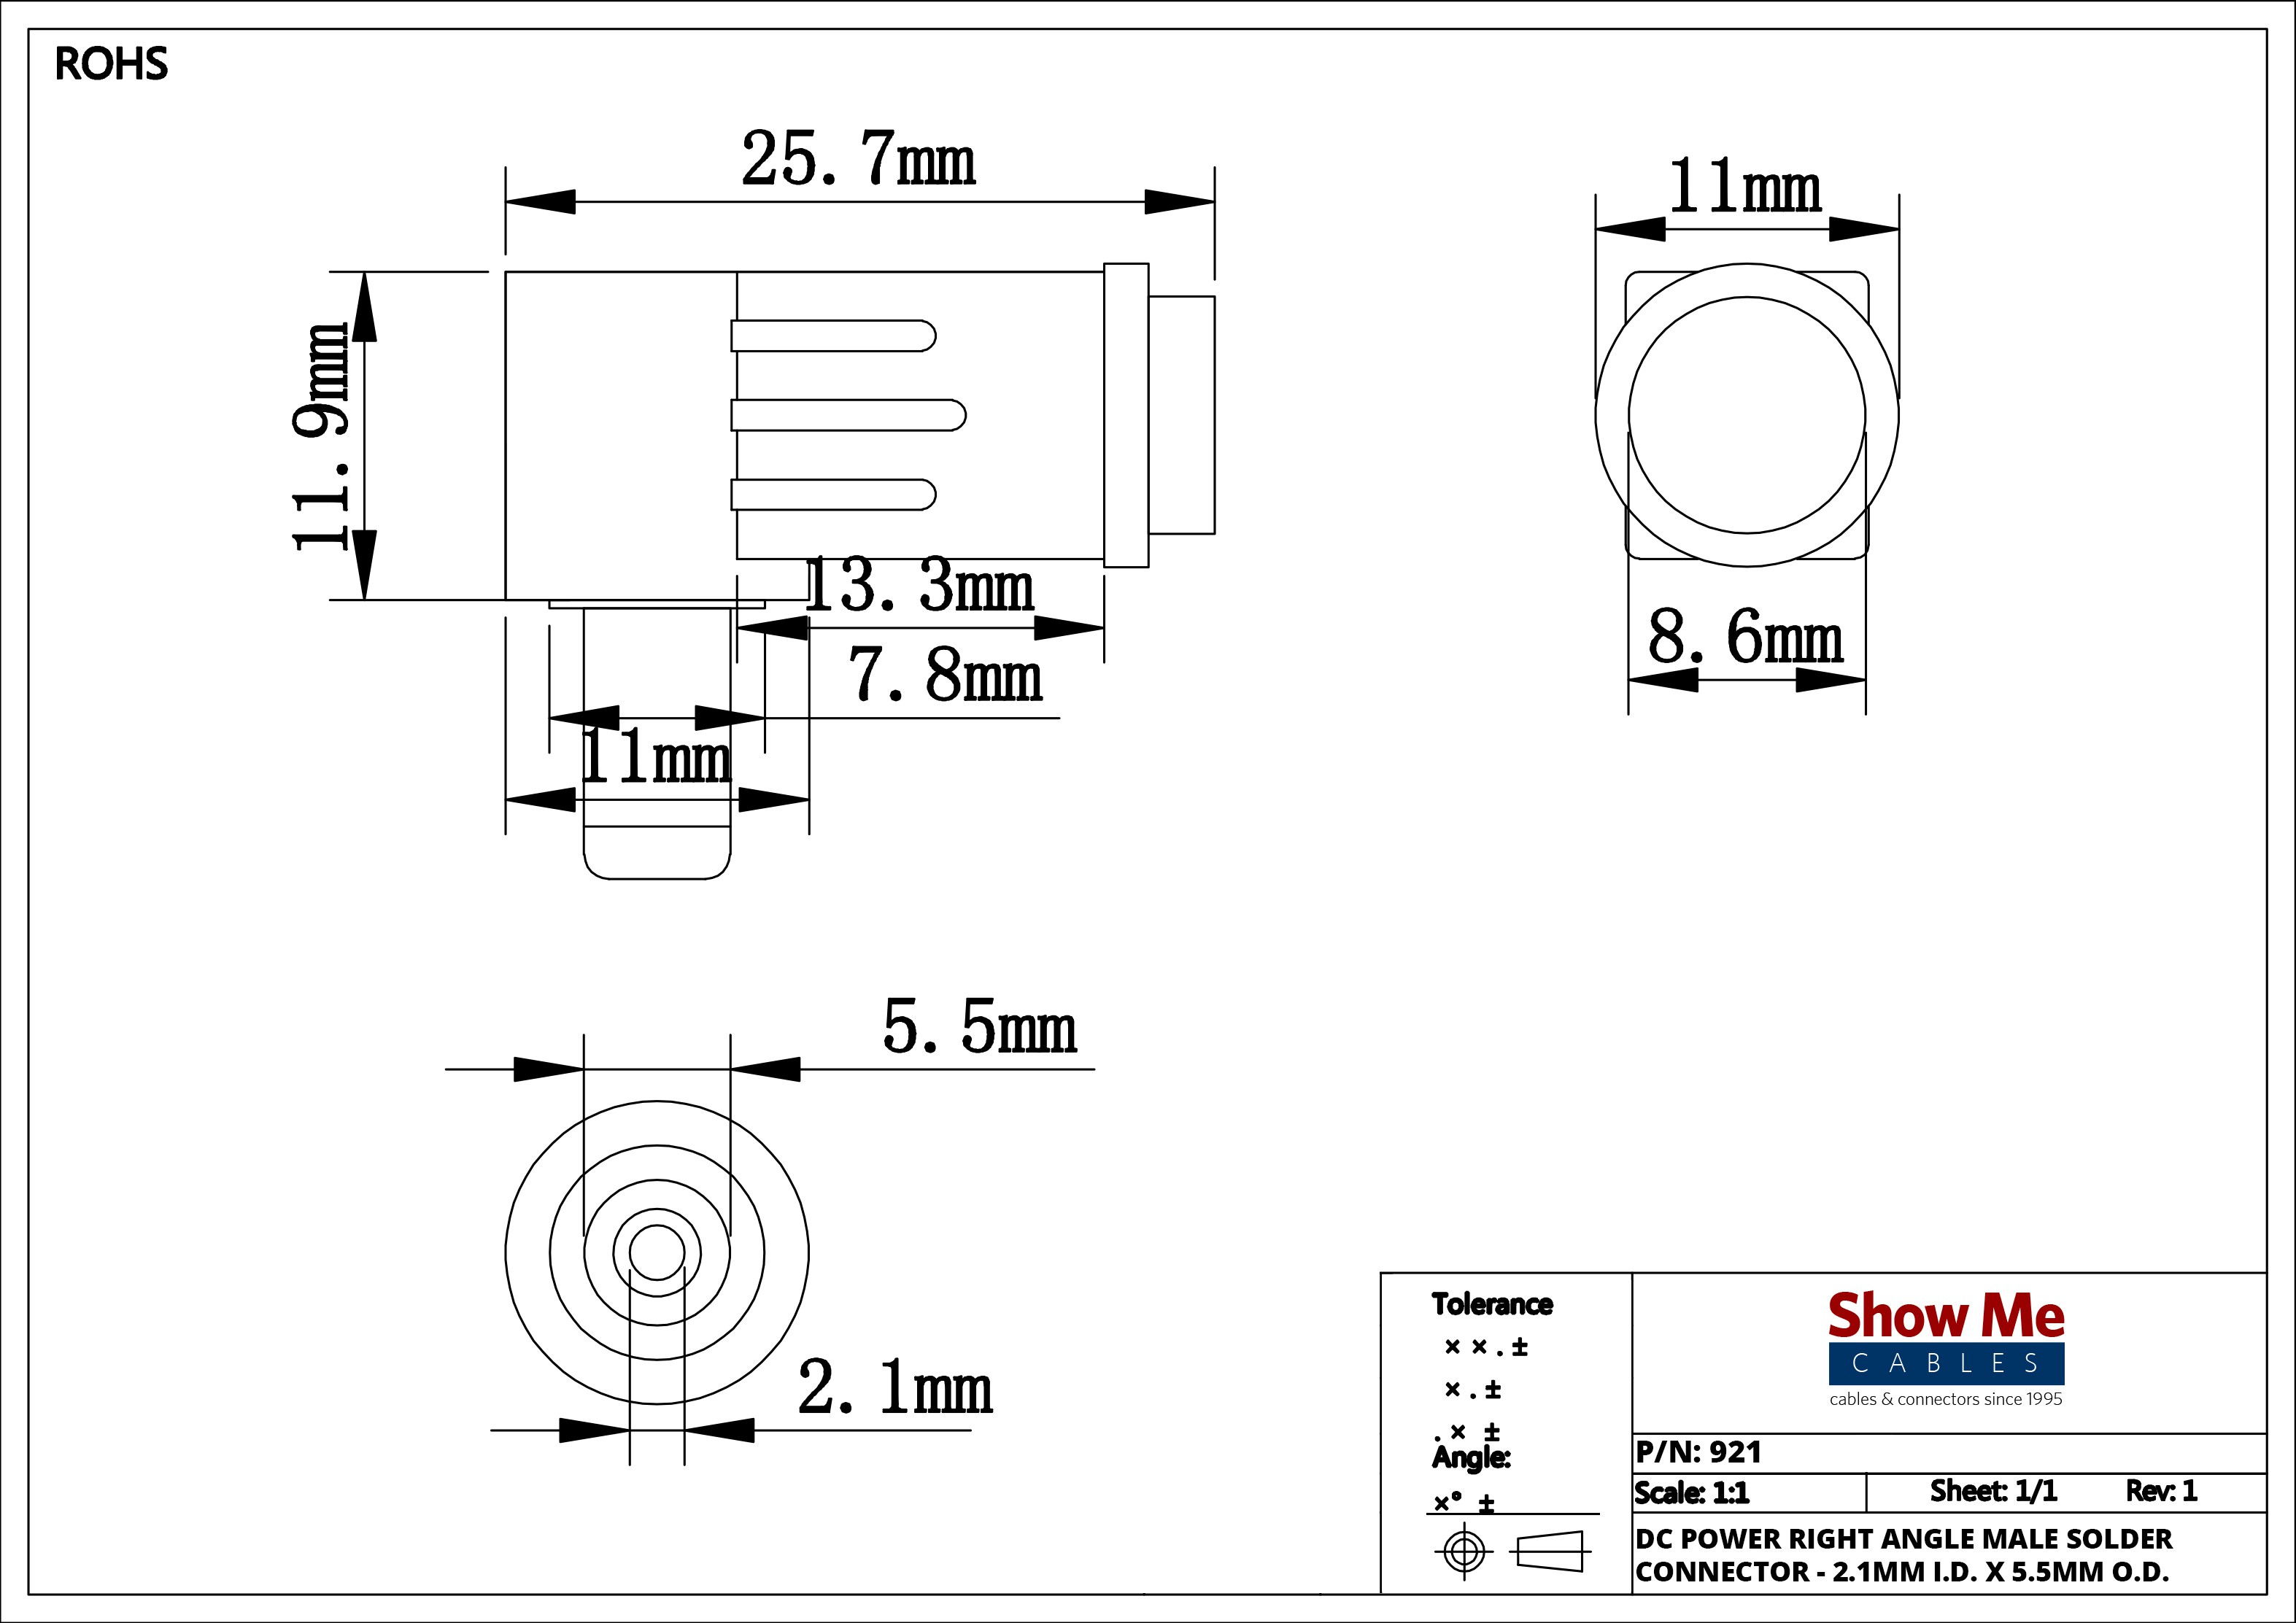 rj11 jack wiring diagram Download-3 5 Mm Stereo Jack Wiring Diagram Elegant 2 5mm Id Od Power Best 3-p